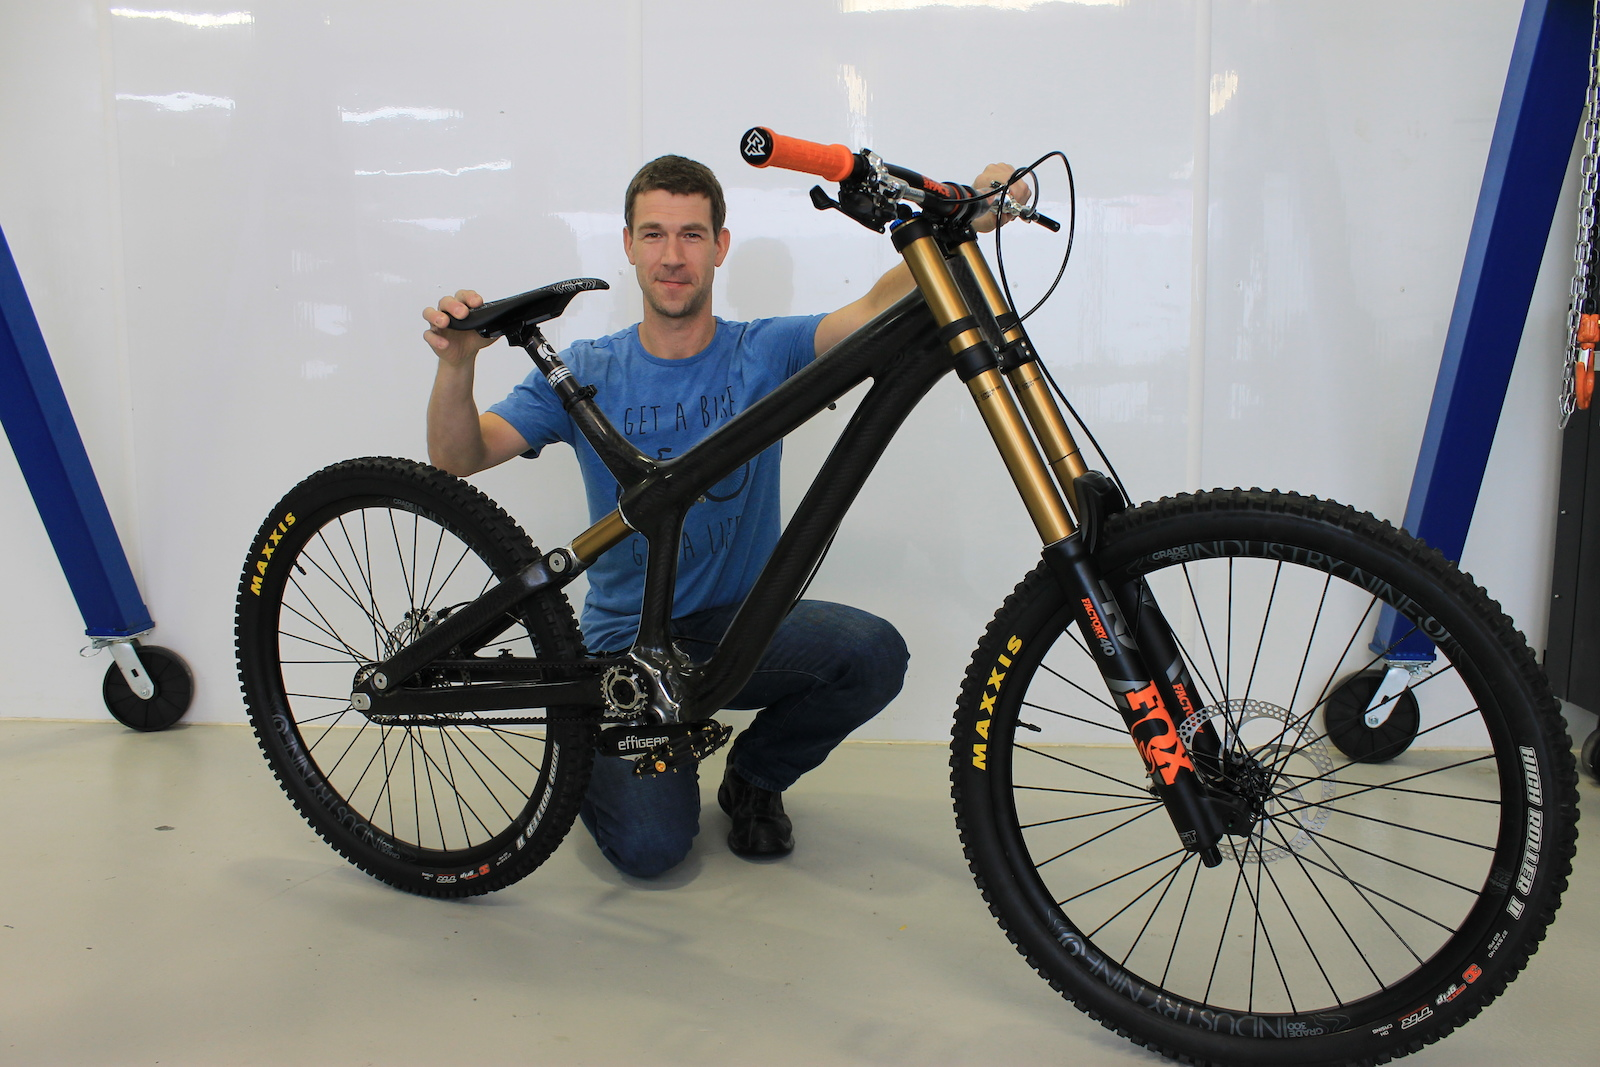 8001c1cac64 The Outlier - The Full Story of the Wild Insolent DH Bike - Pinkbike